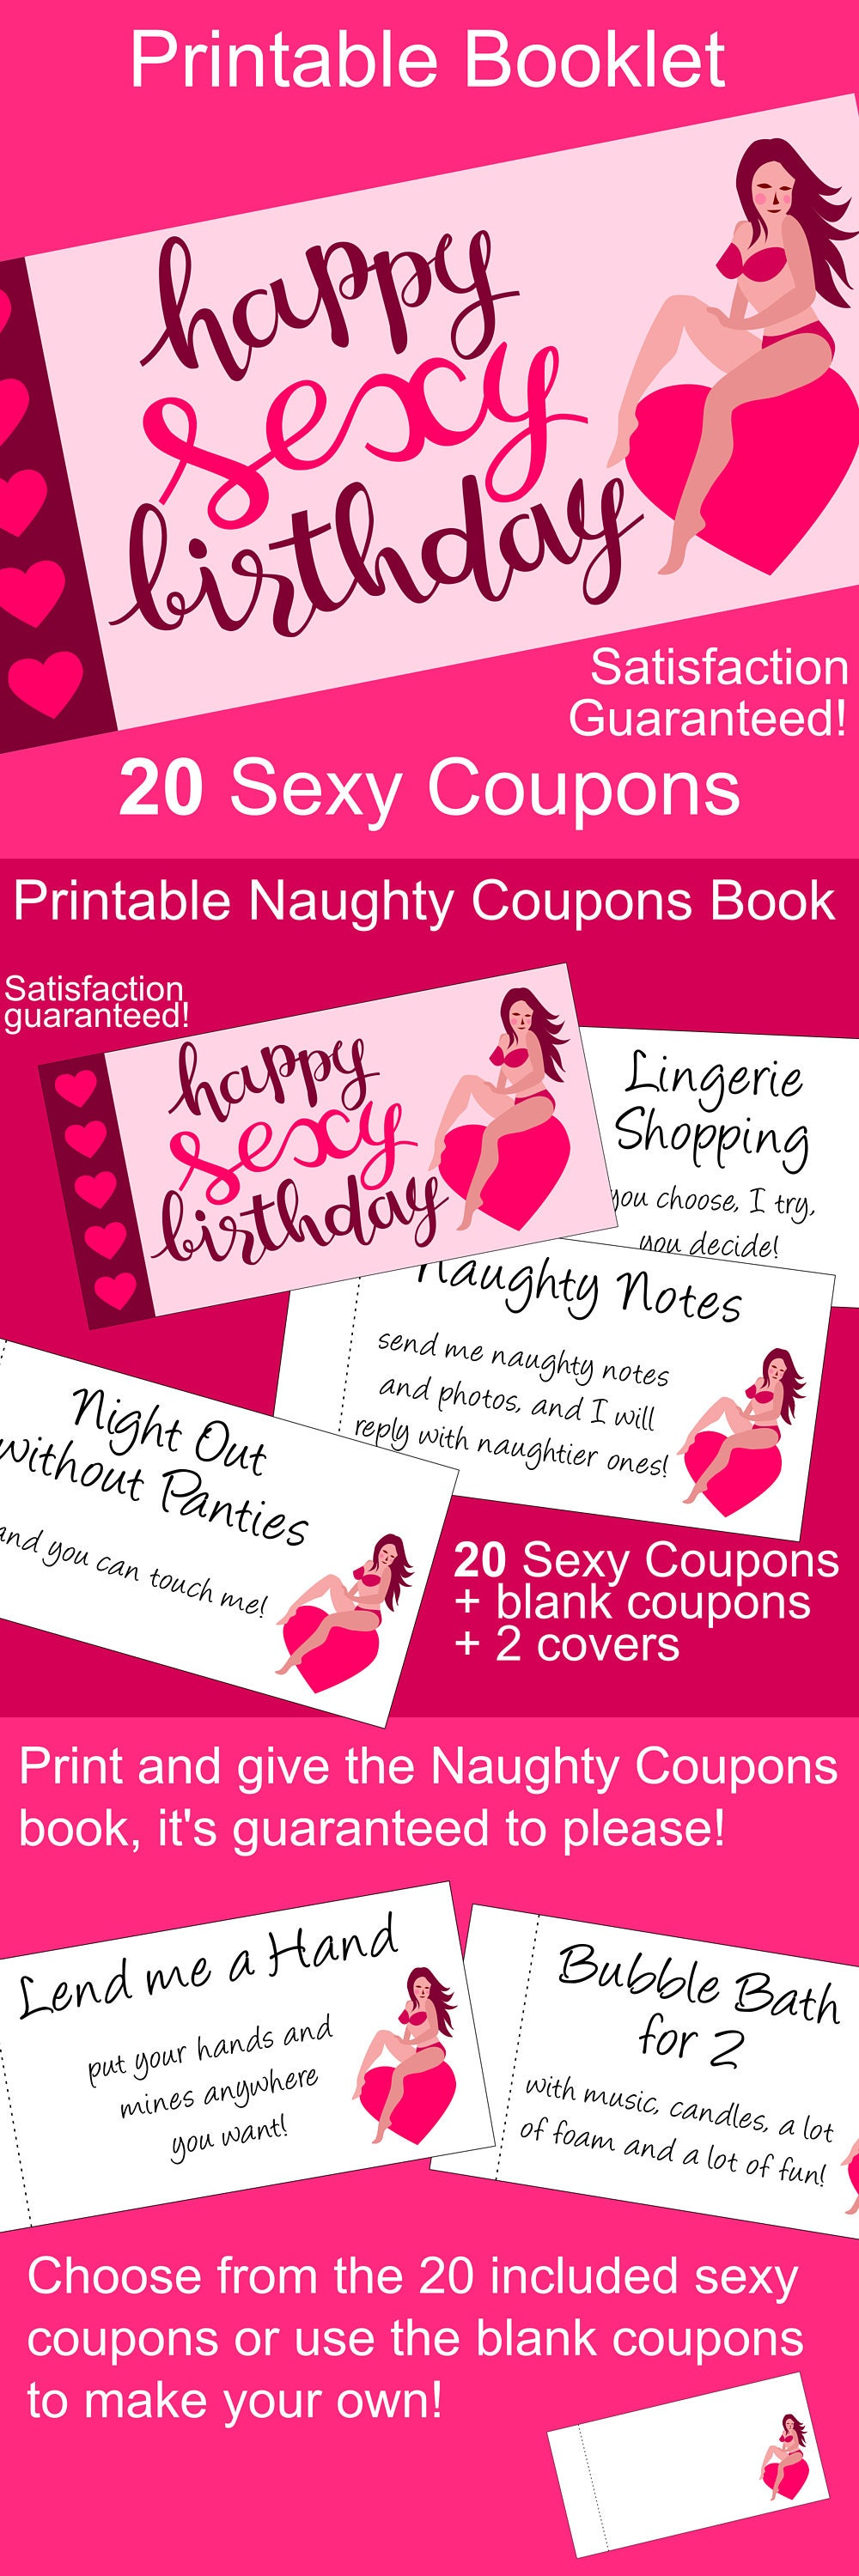 Sexy Birthday Gift For Him: Printable Naughty Coupons Book